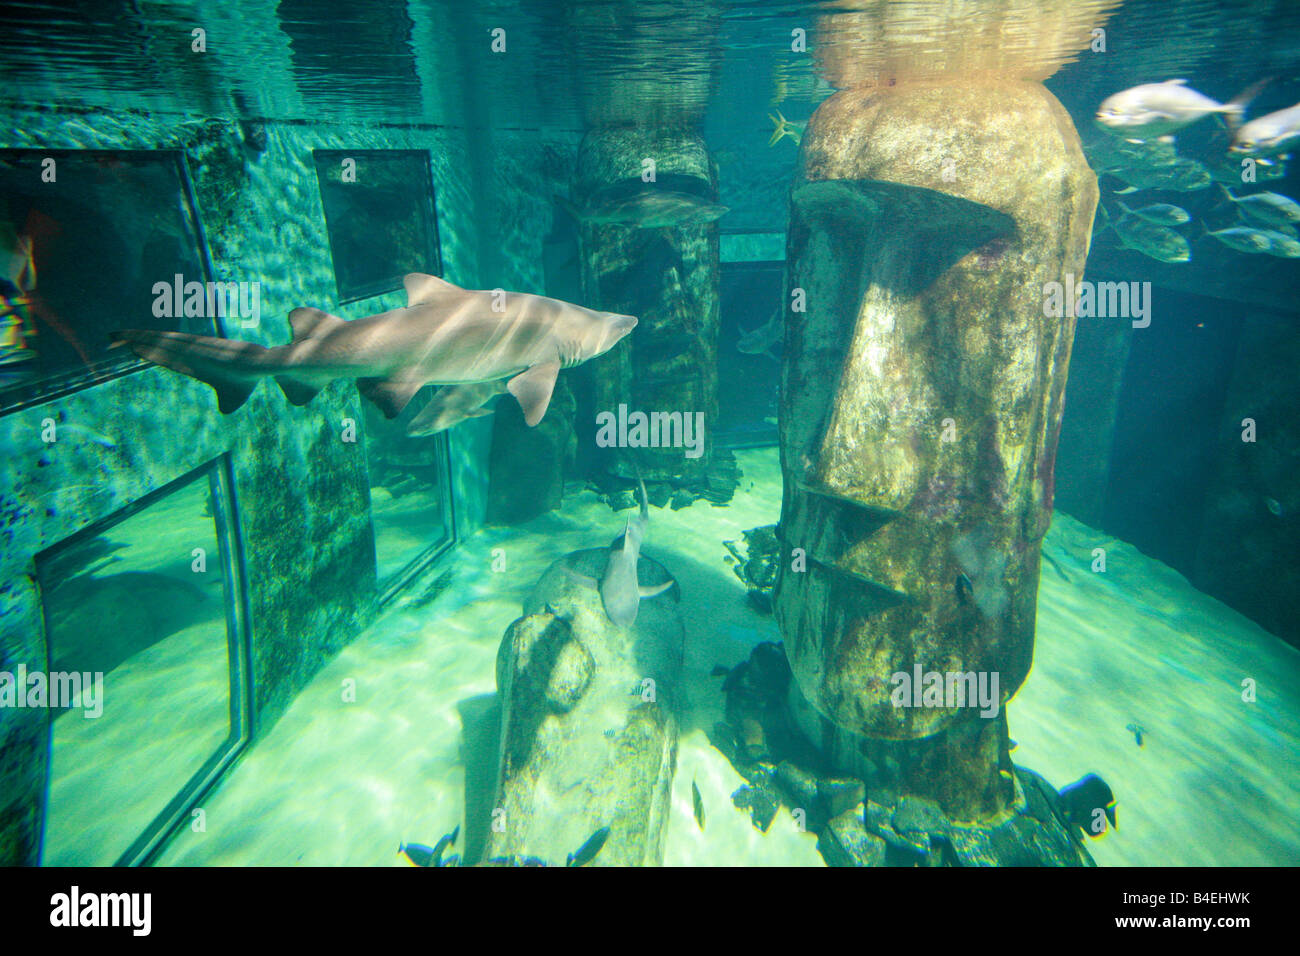 Sabre tooth tiger sharks swimming in giant glass viewing fish tank at London aquarium a major tourist landmark attraction - Stock Image